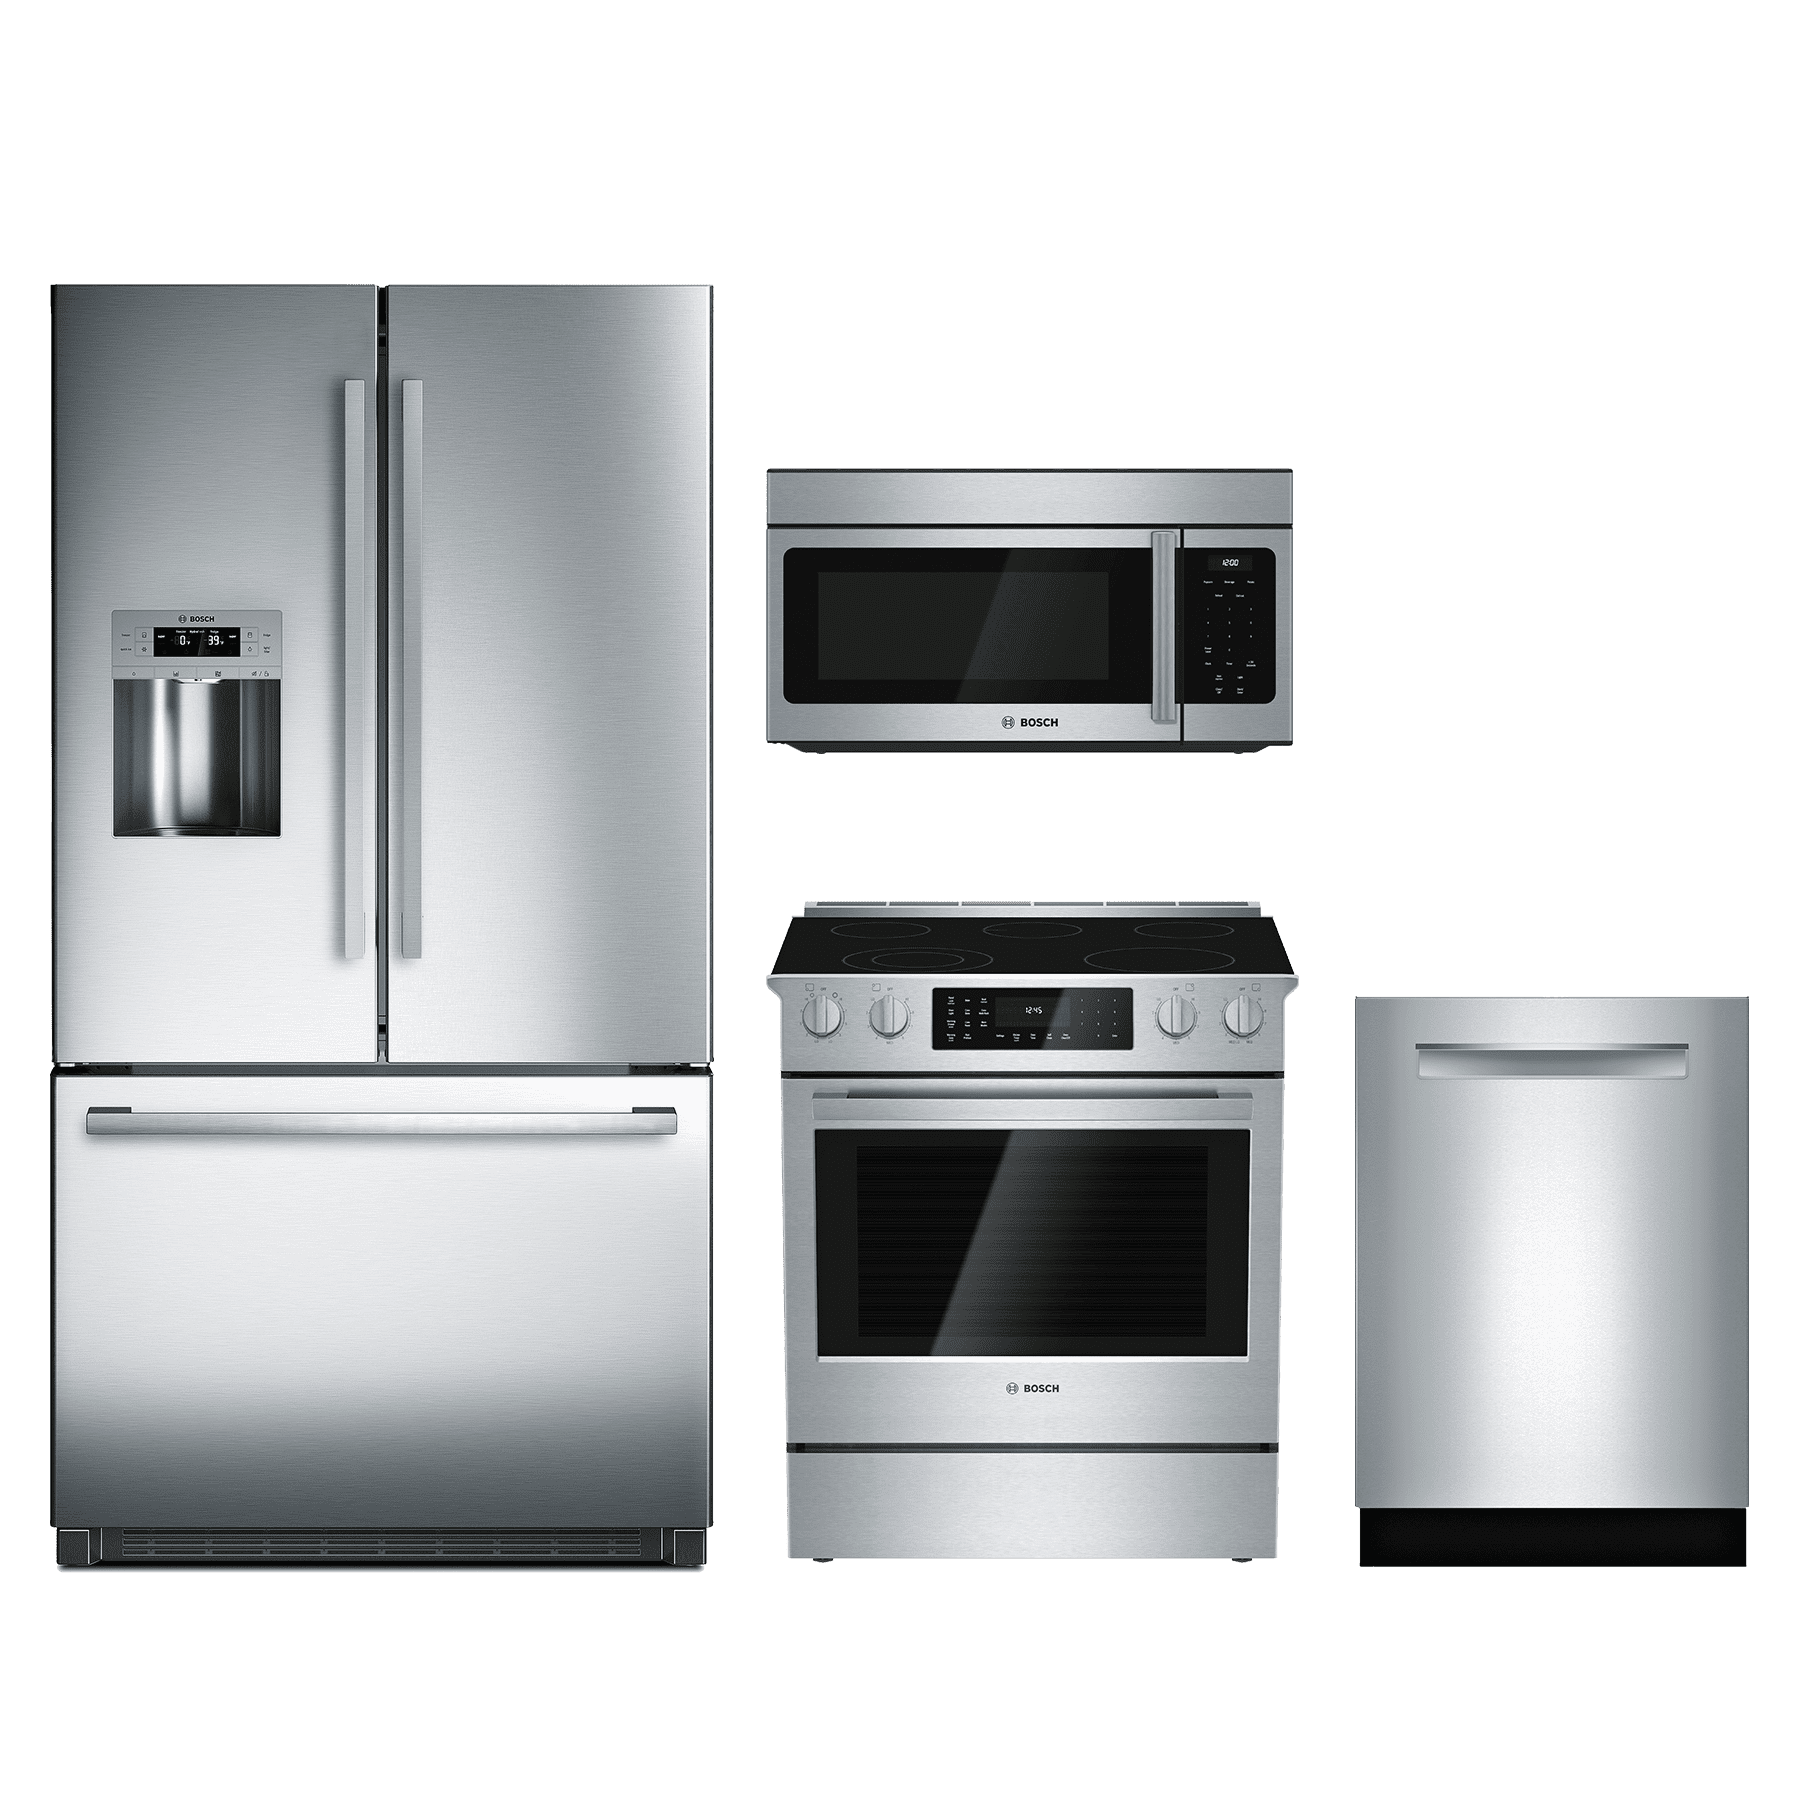 stock appliances wholesale bjs costco club sams ideas food packages for appliance refrigerator kitchen s beach contemporary pa inspirations samsung chairs package discounted using rack sam nice sears clothes